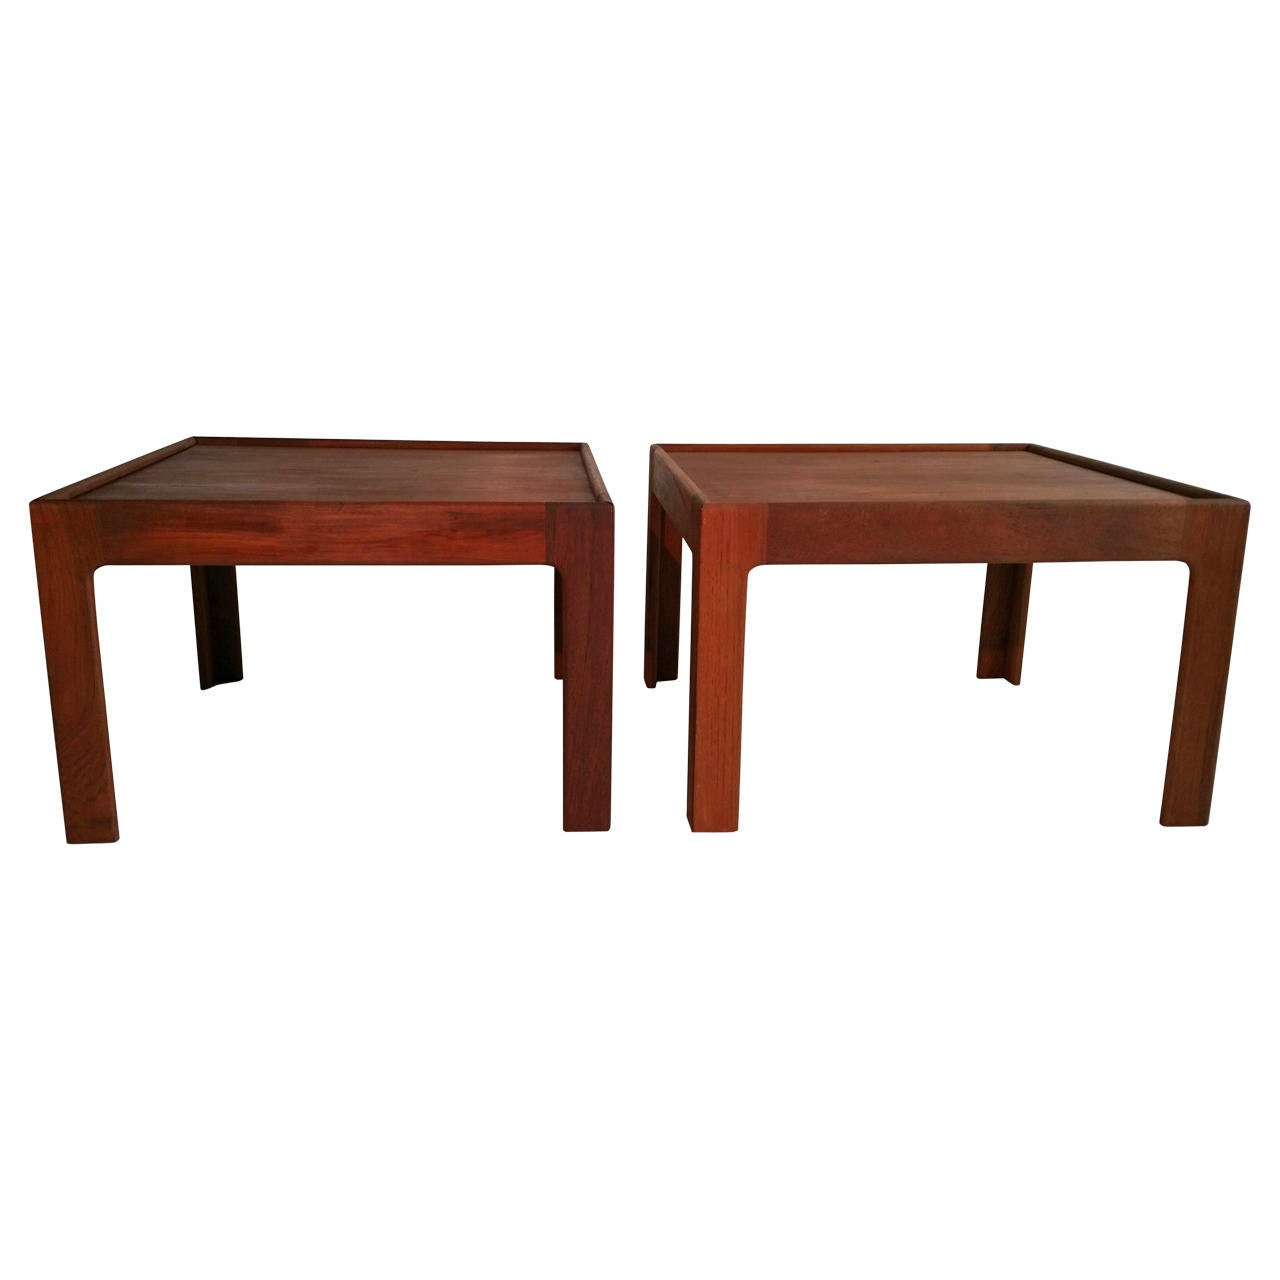 Pair of Side Tables by Illum Wikkelso, Denmark